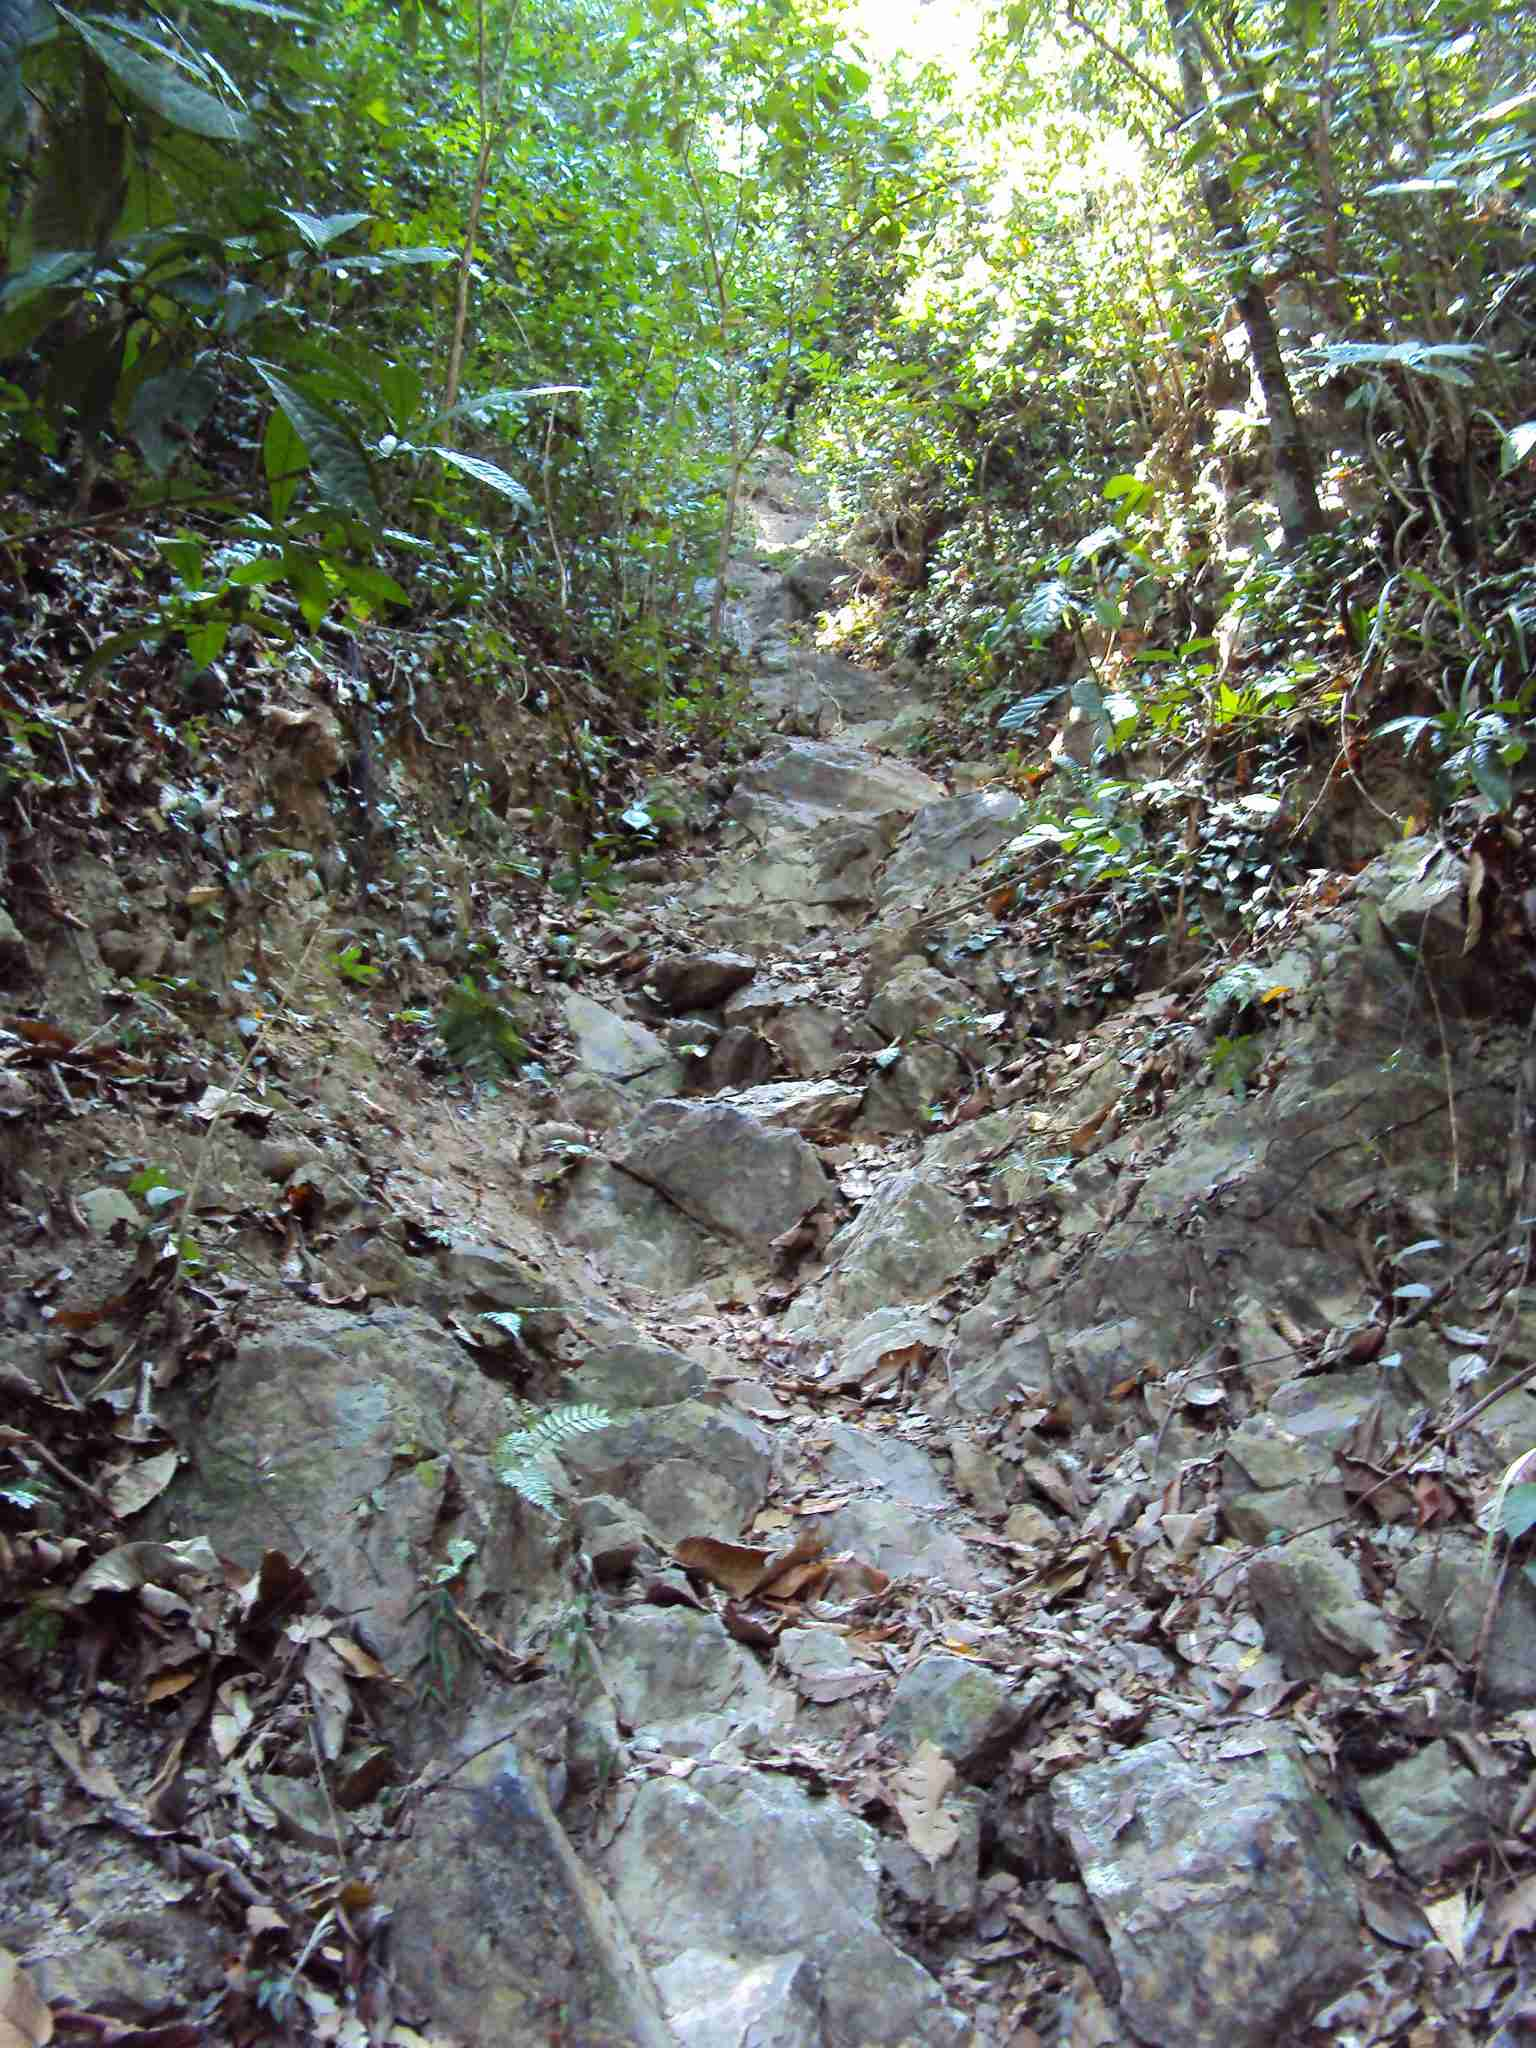 It is much steeper than at first glance